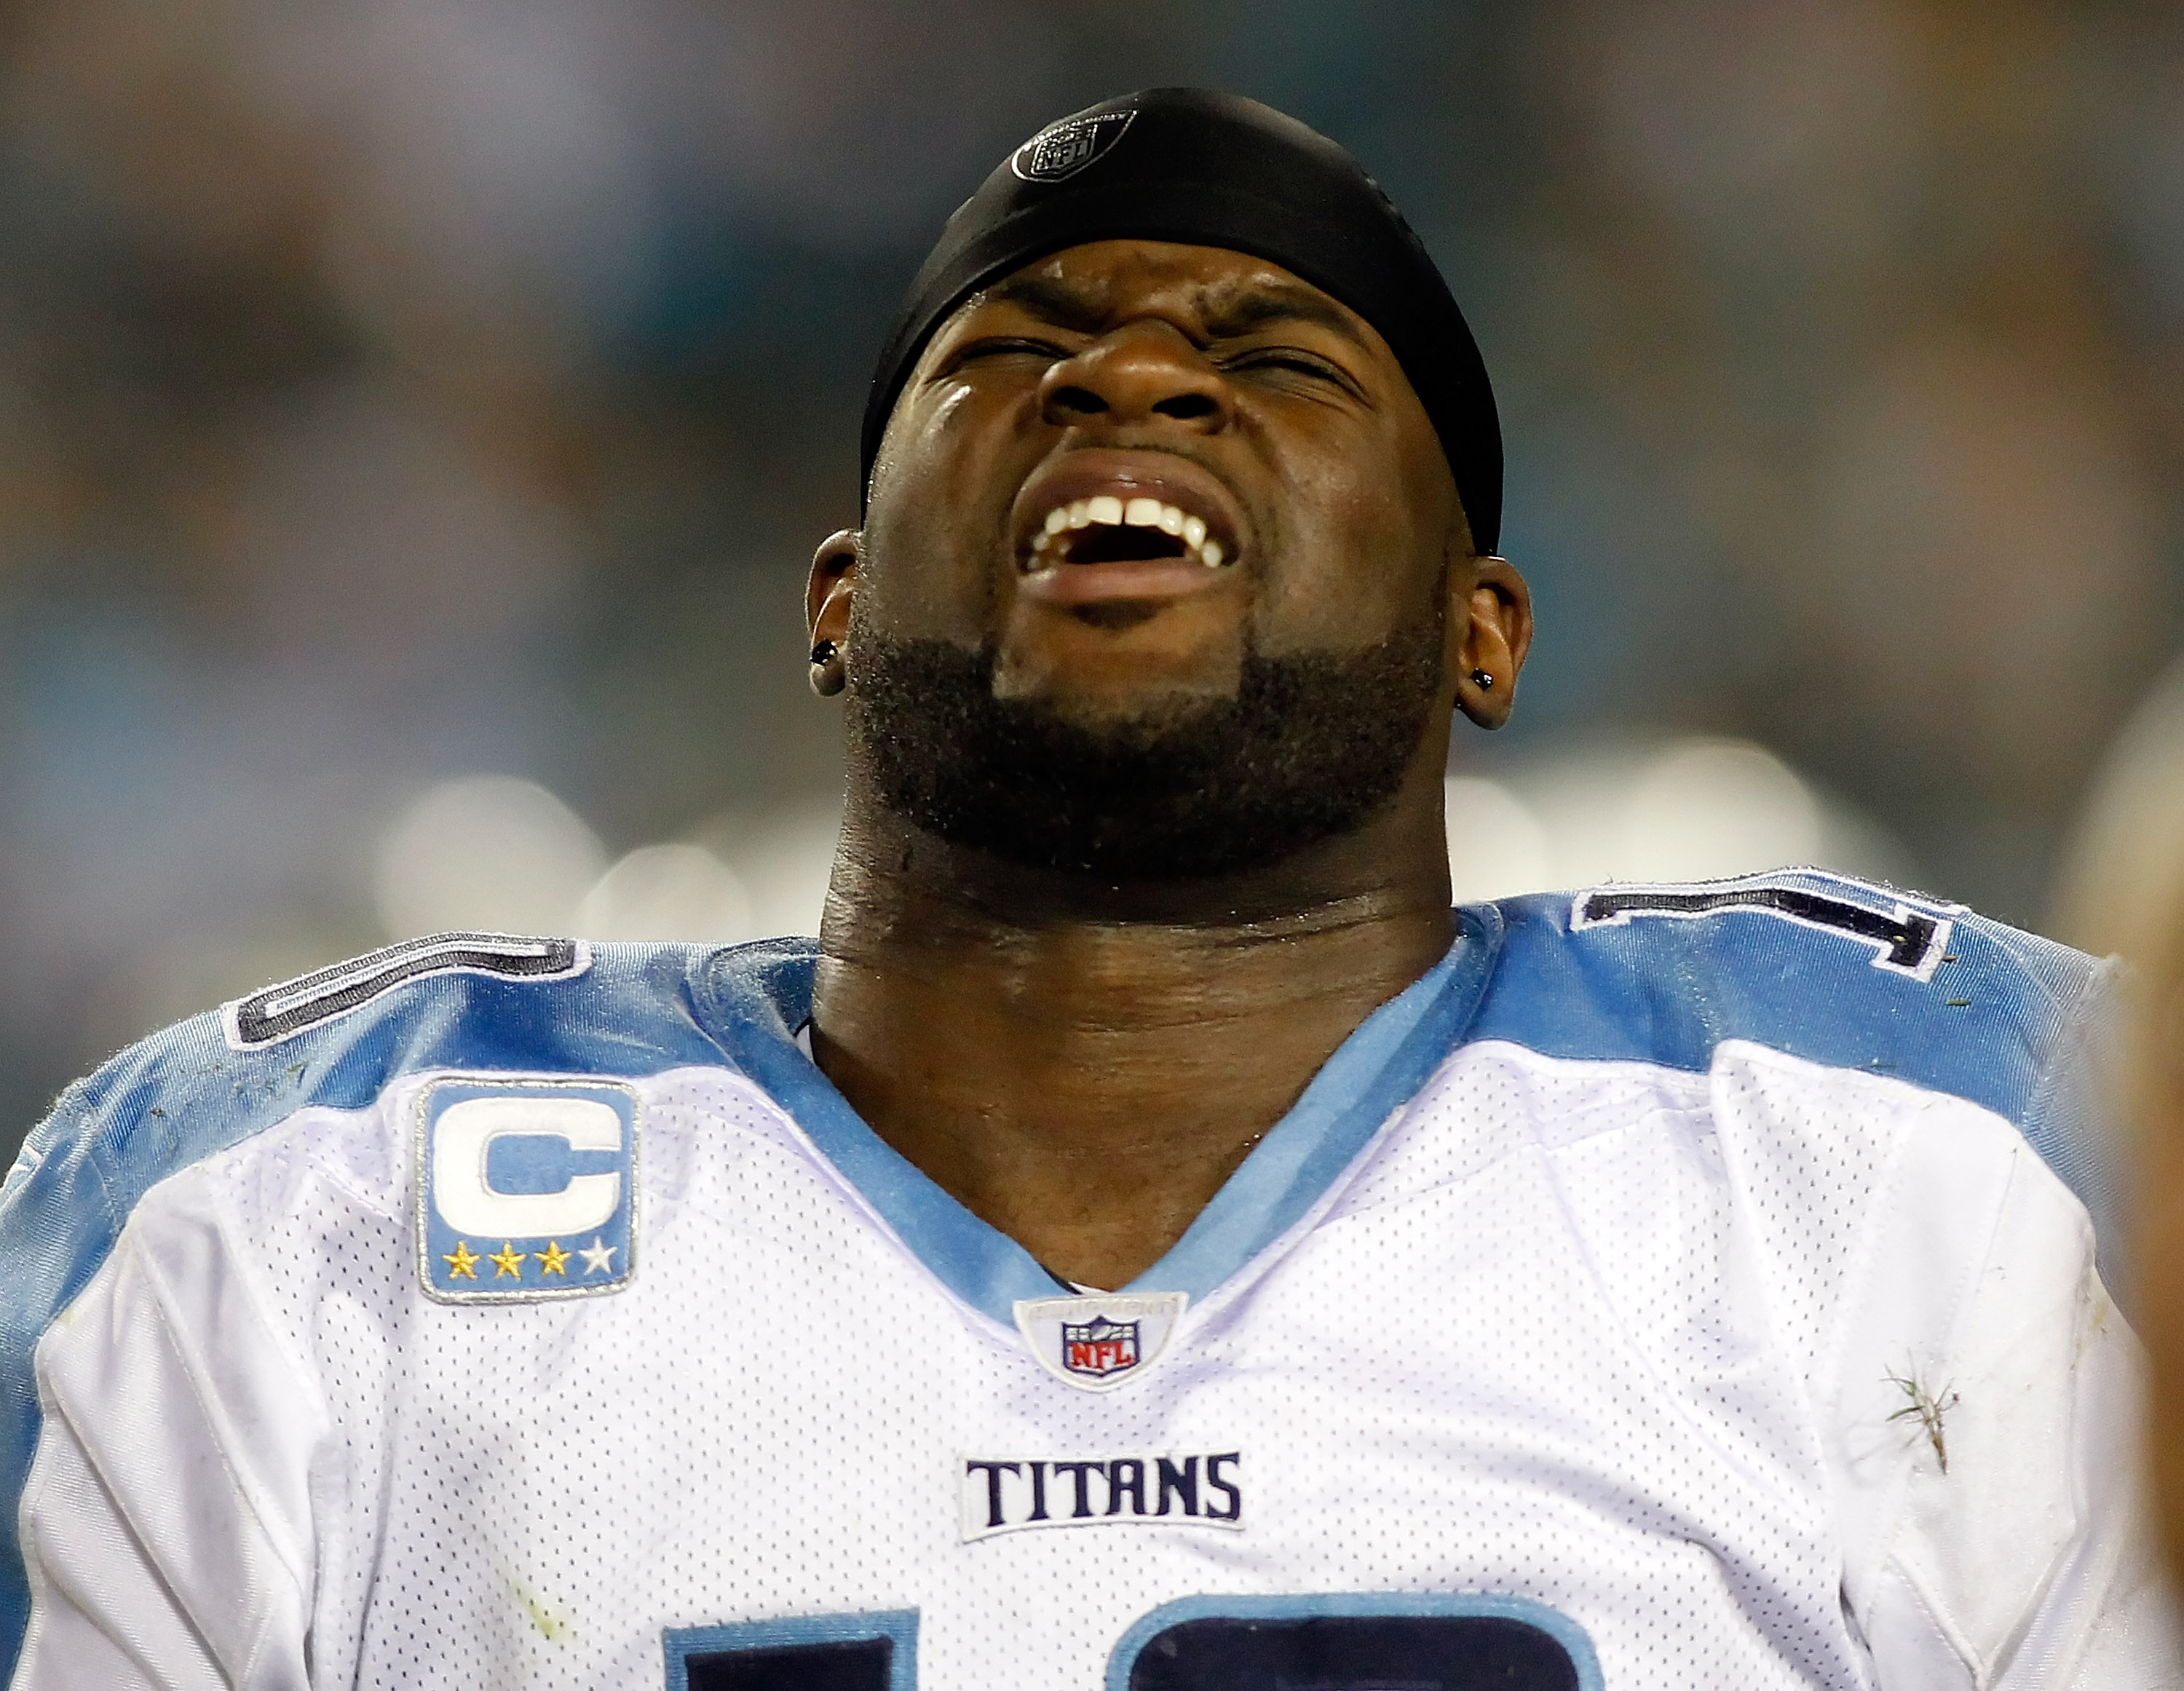 JACKSONVILLE, FL - OCTOBER 18:  Quarterback Vince Young #10 of the Tennessee Titans grimaces in pain during the first quarter against the Jacksonville Jaguars during the game at EverBank Field on October 18, 2010 in Jacksonville, Florida.  (Photo by J. Me